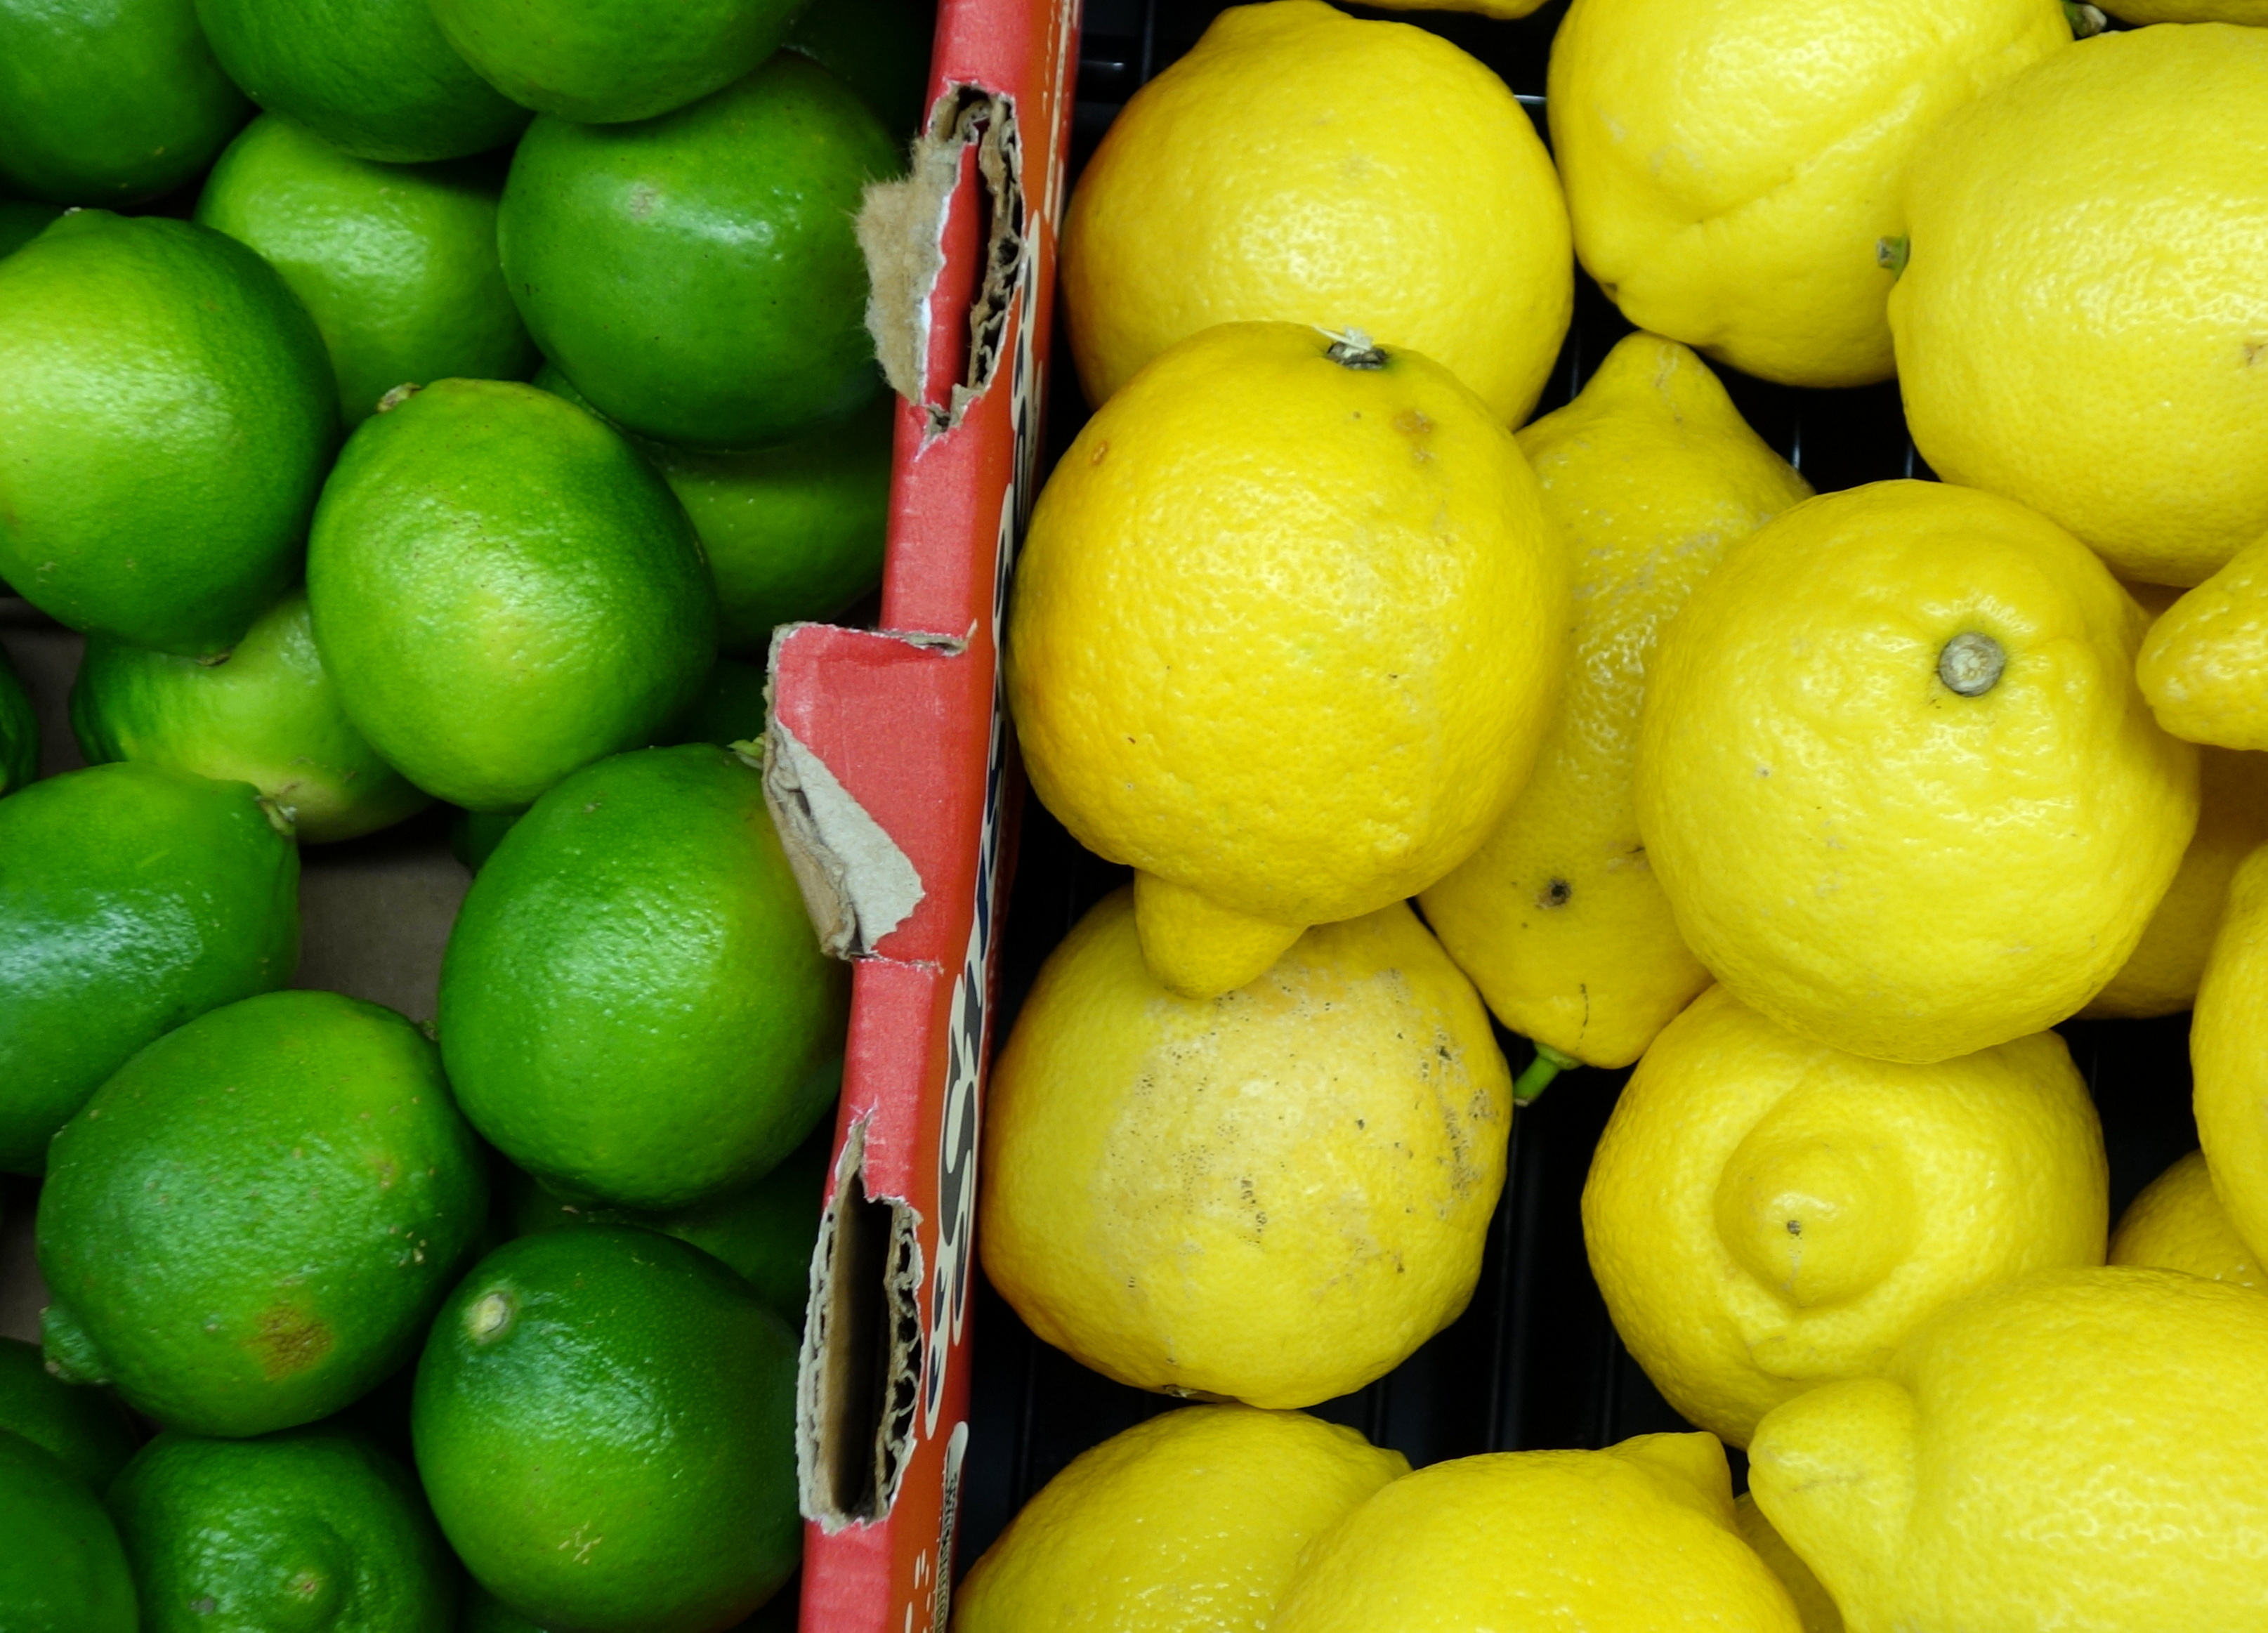 File:Limes & Lemons - DSC06057.JPG - Wikimedia Commons